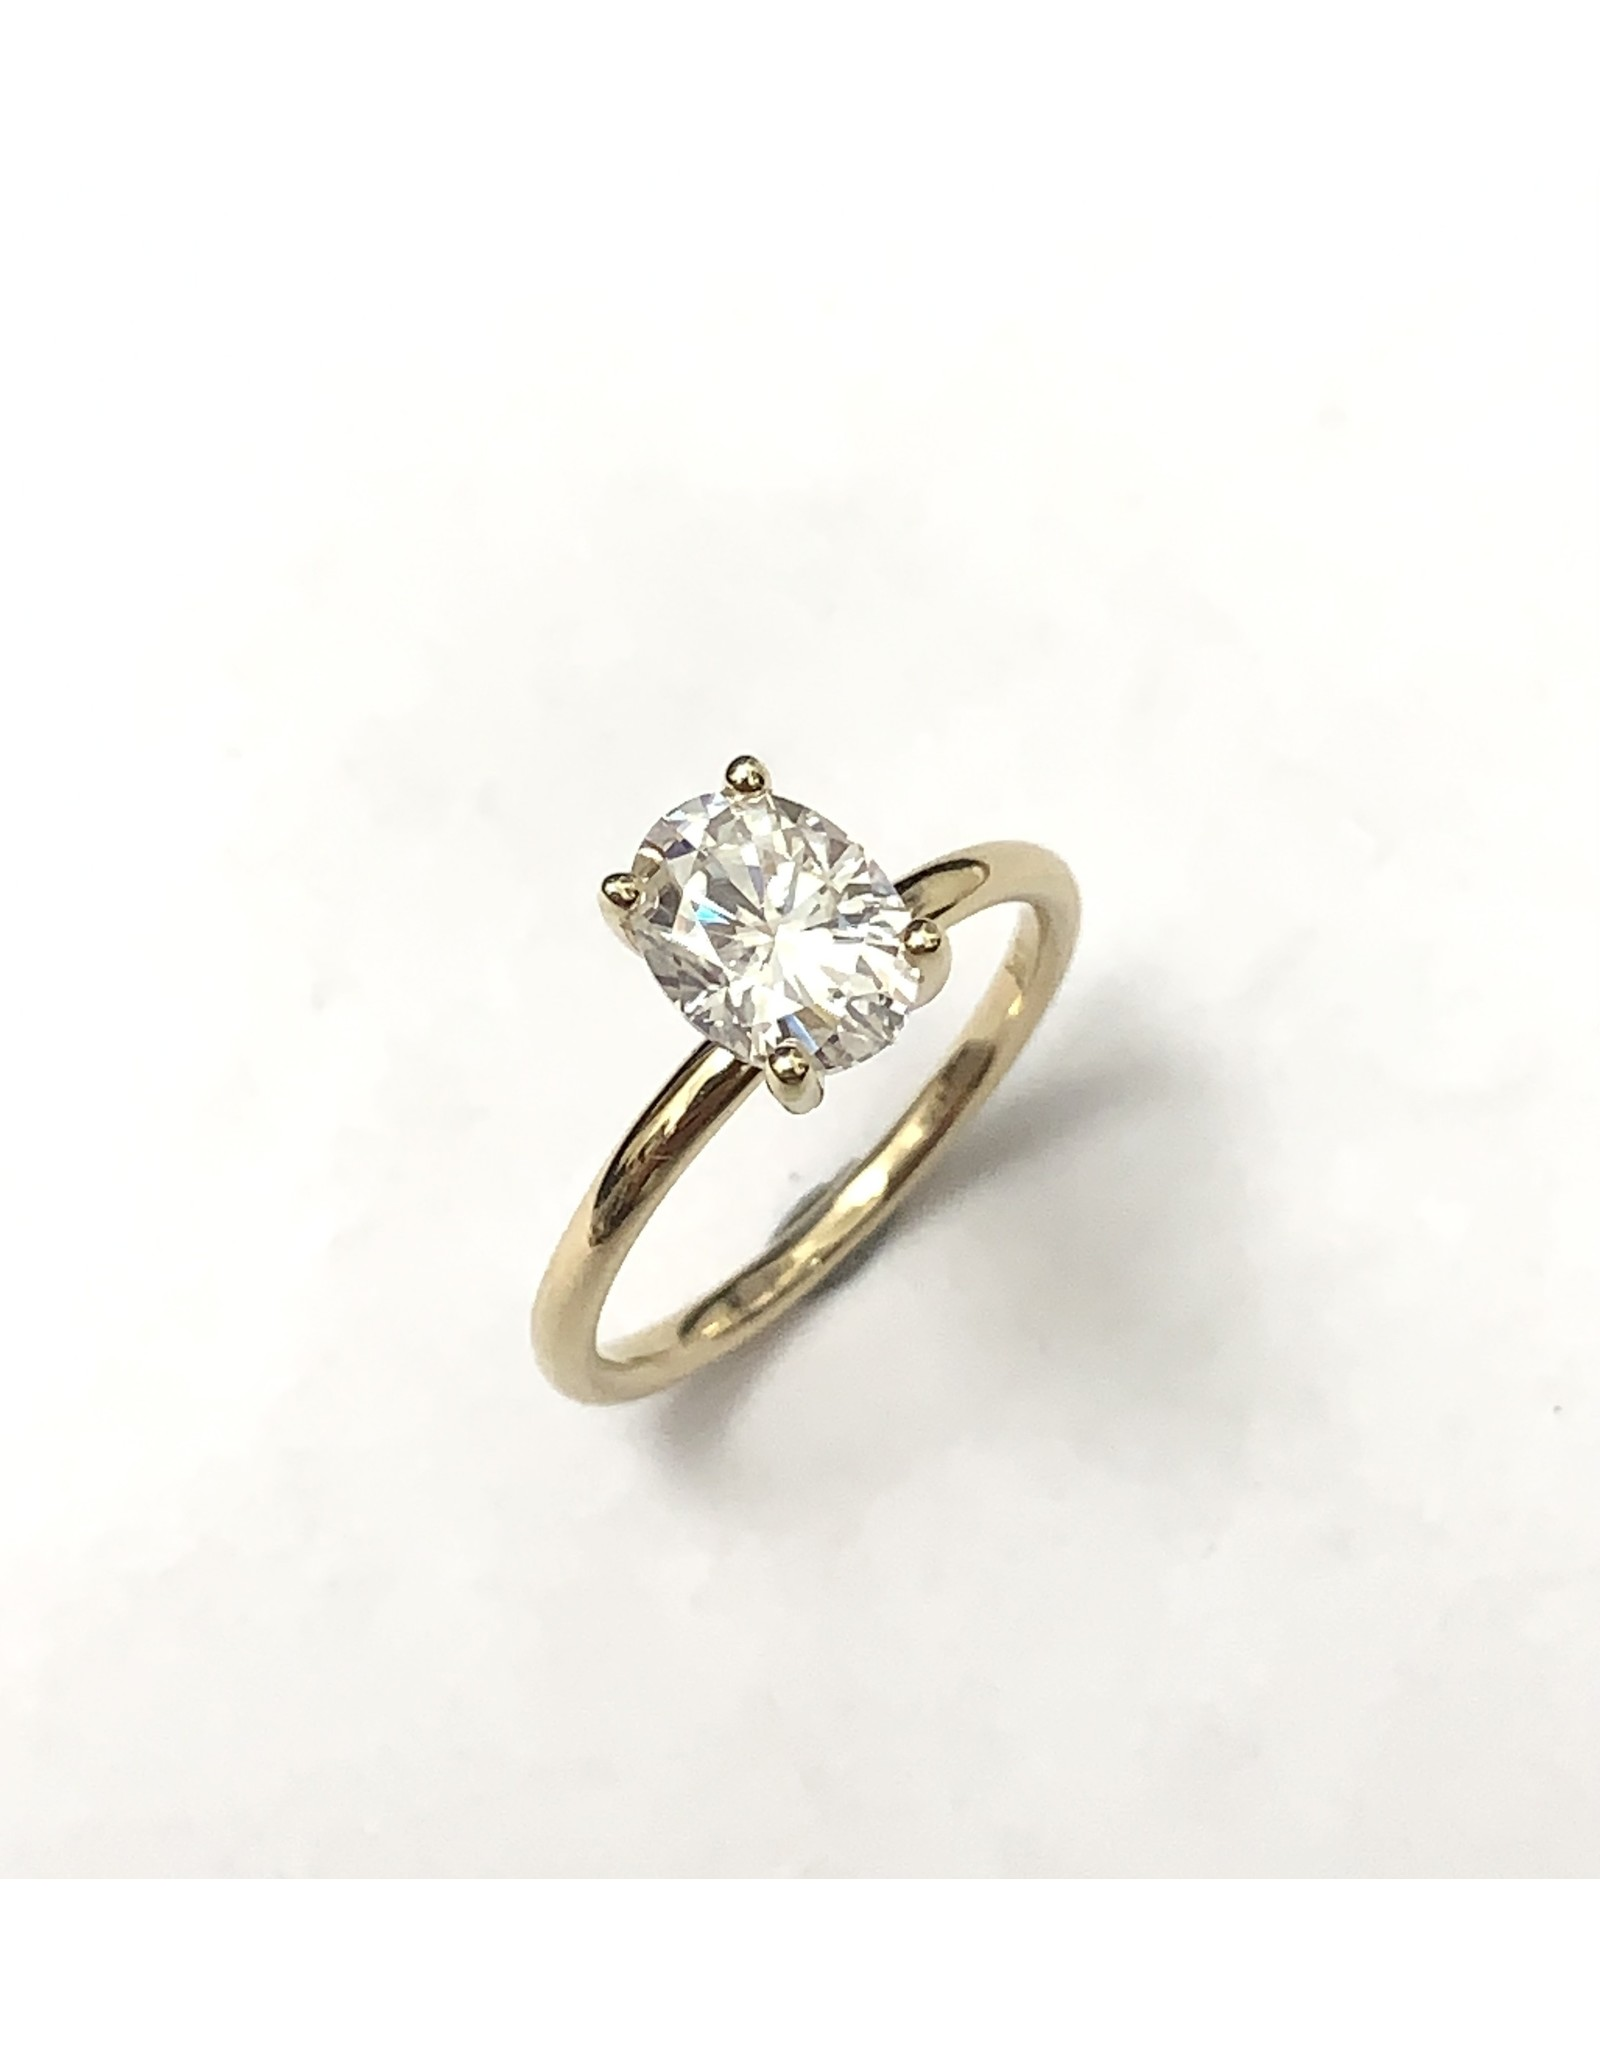 Oval Moissanite Solitaire Ring 14KY